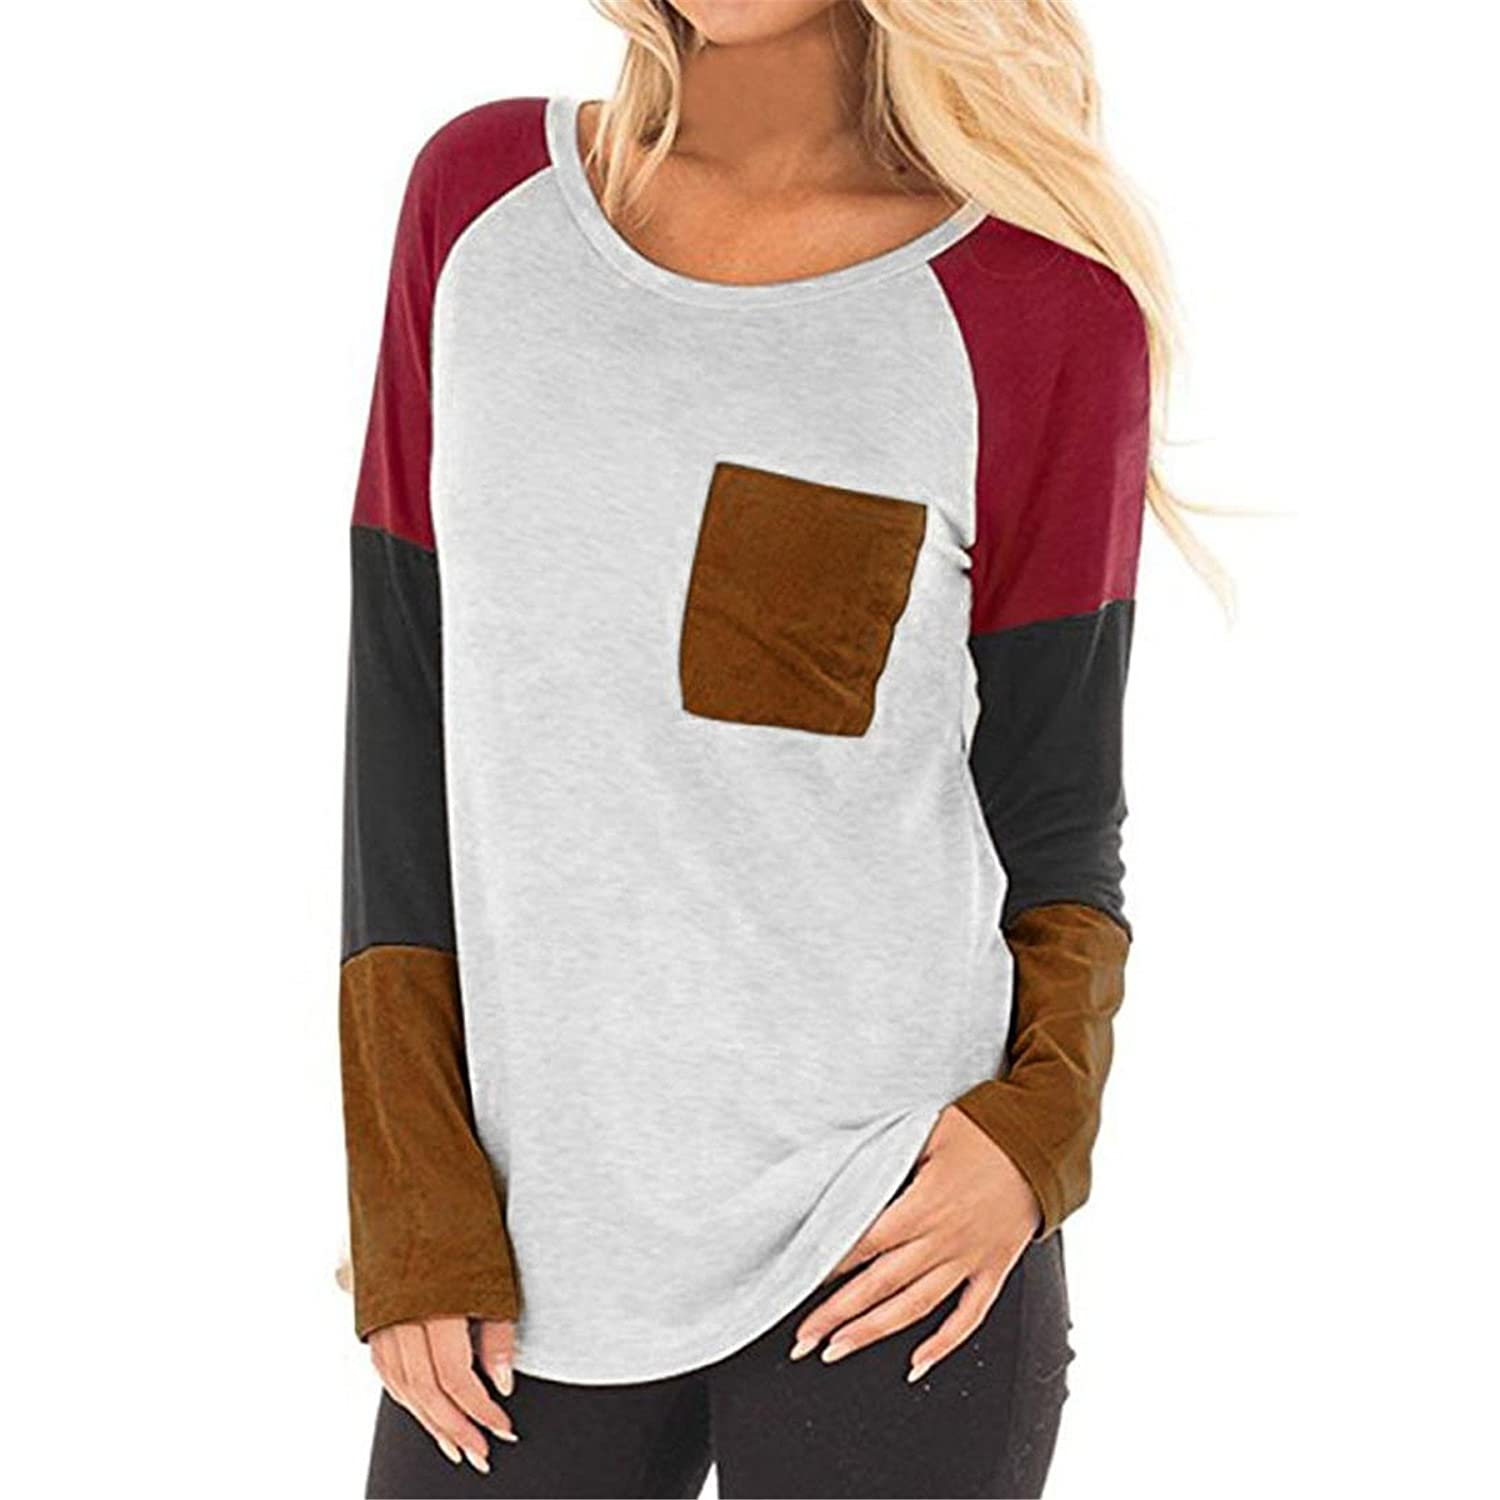 KESEE Women Long Sleeve O-Neck Pocket Patchwork Casual Loose T-Shirt Blouse Tops Splice T Shirt